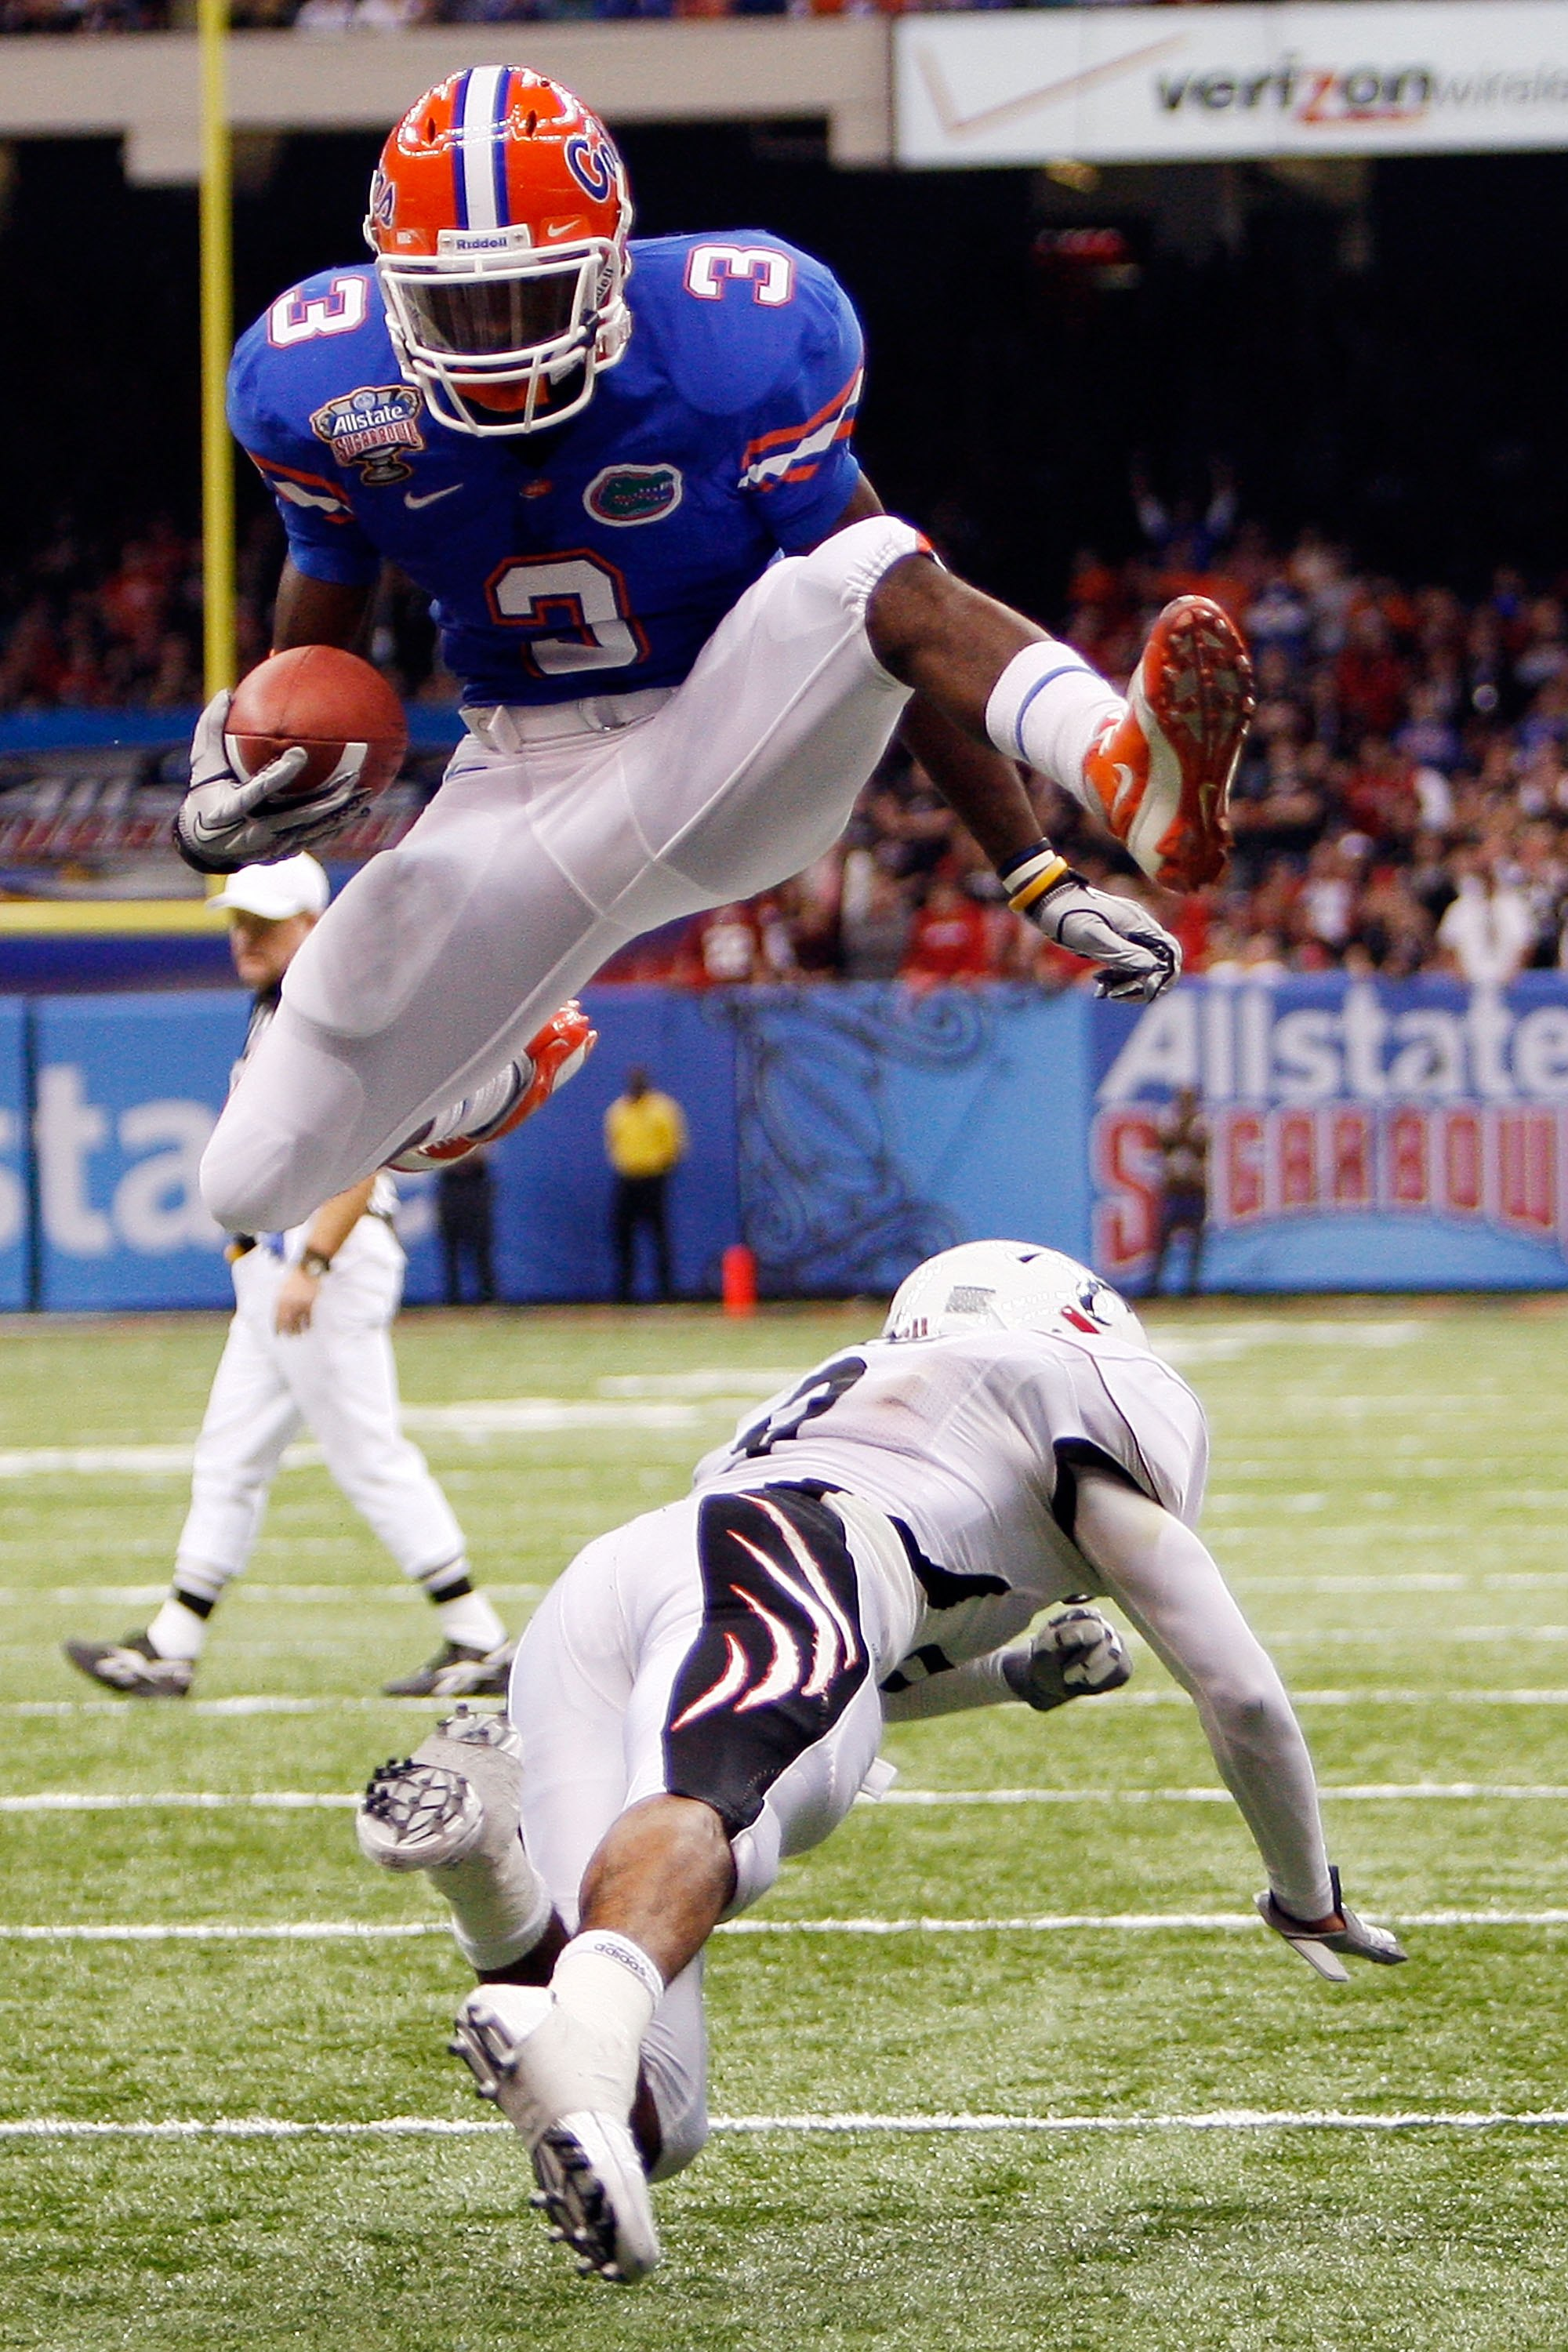 Chris Rainey hopes to take the Gators up and over the opposition in 2011.